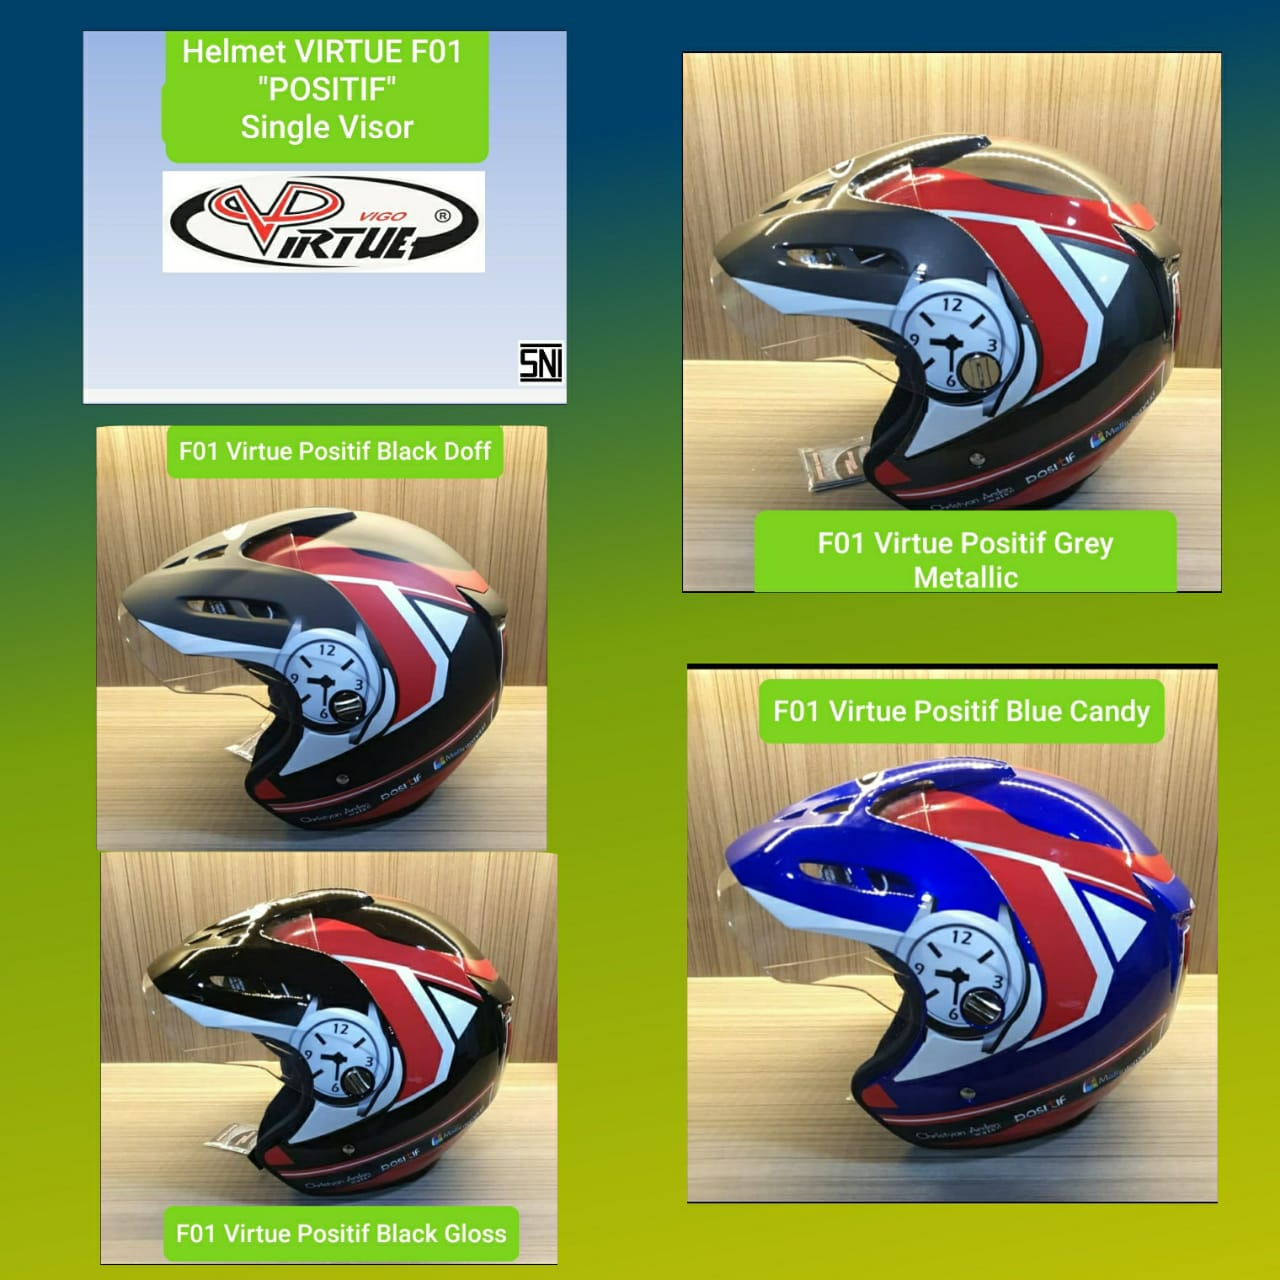 TYPE F01 Virtue Positif Single Visor